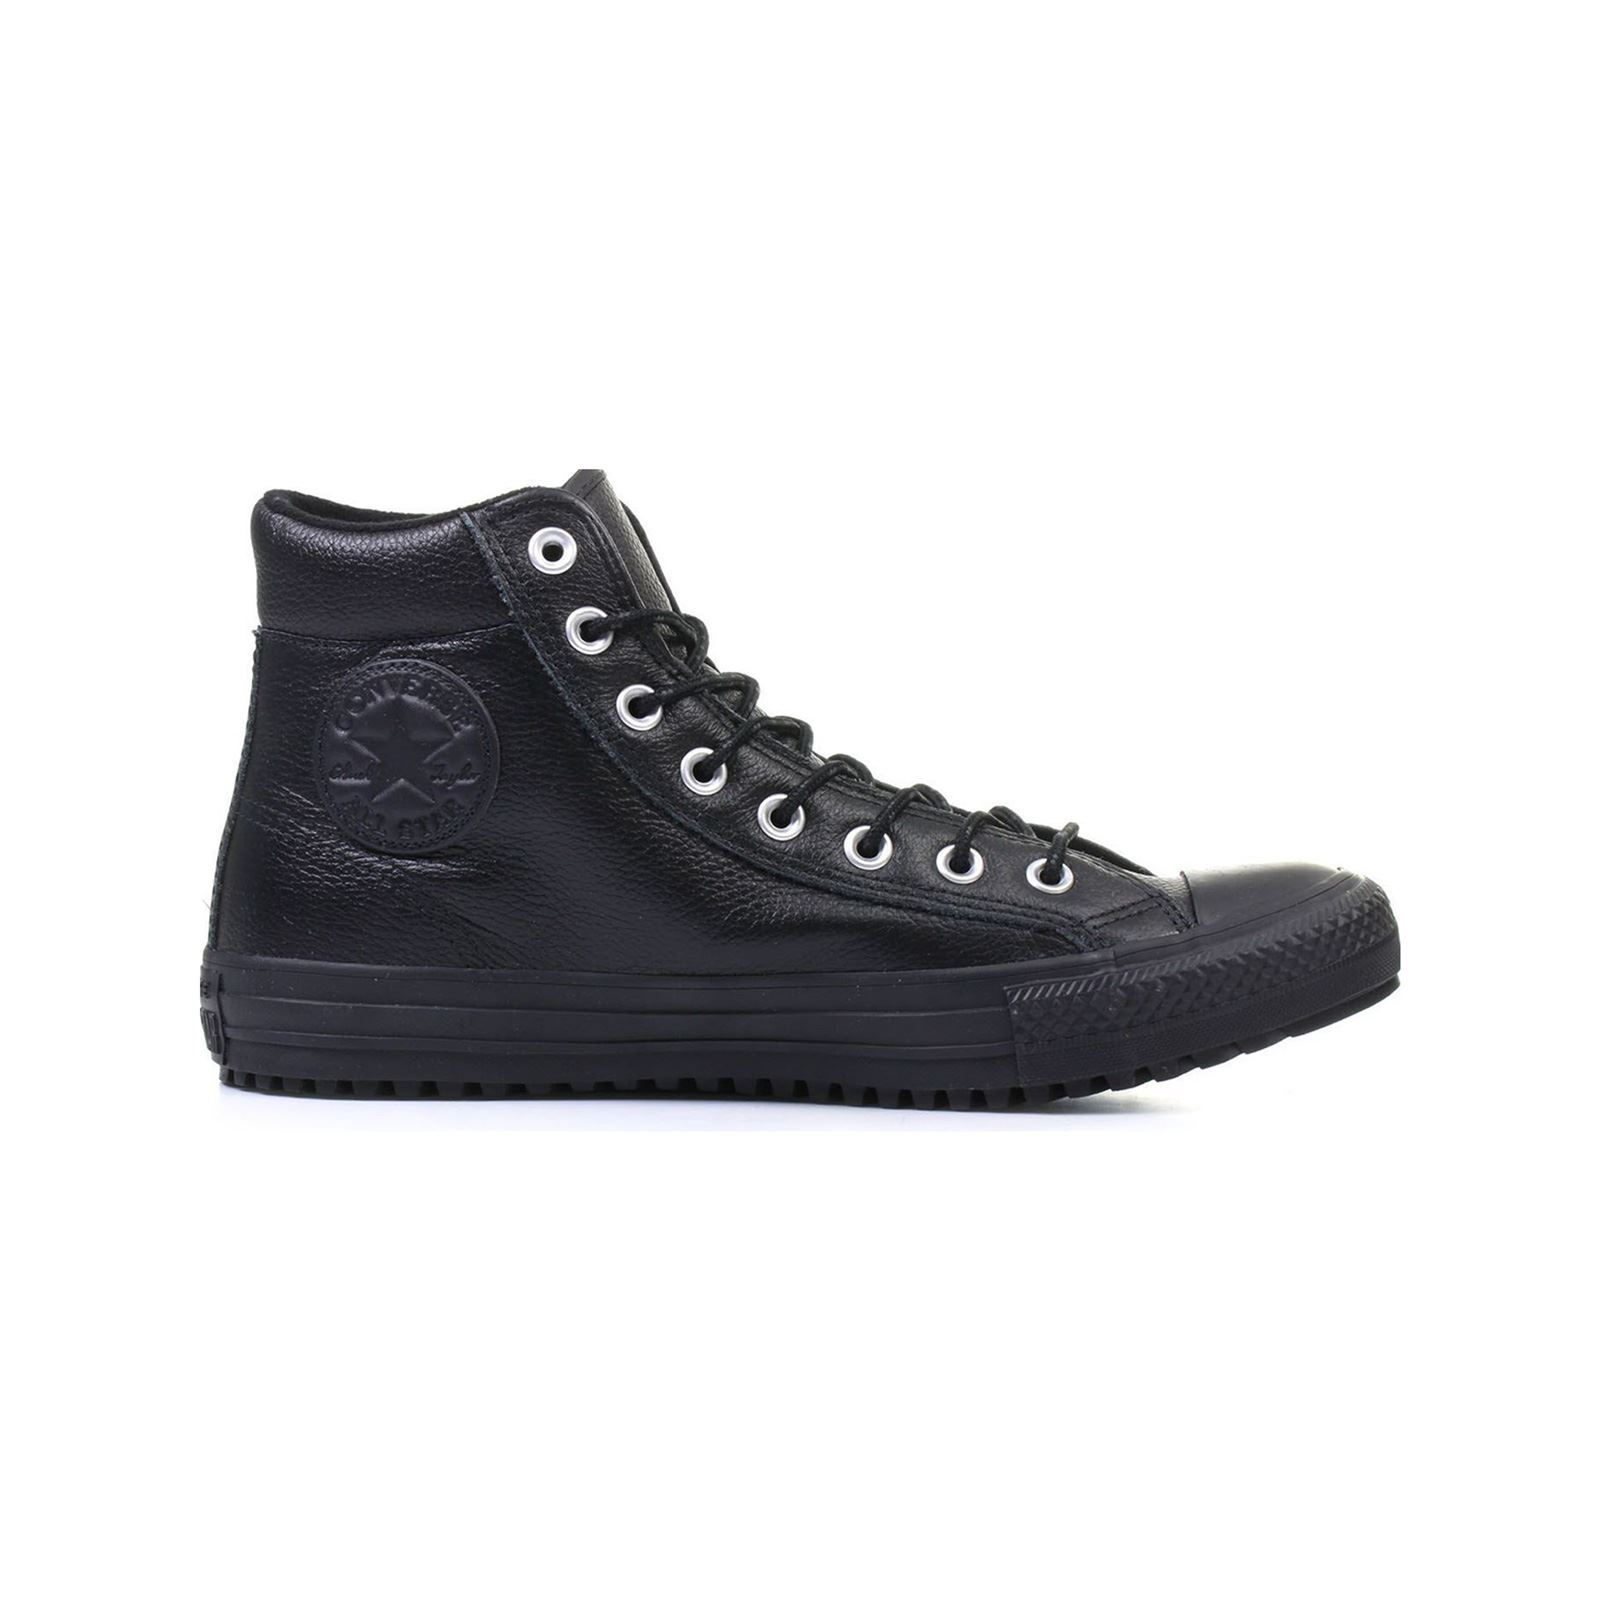 56b7322ba2f Converse Chuck Taylor All Star Boot PC - Zapatillas de cuero - negro ...